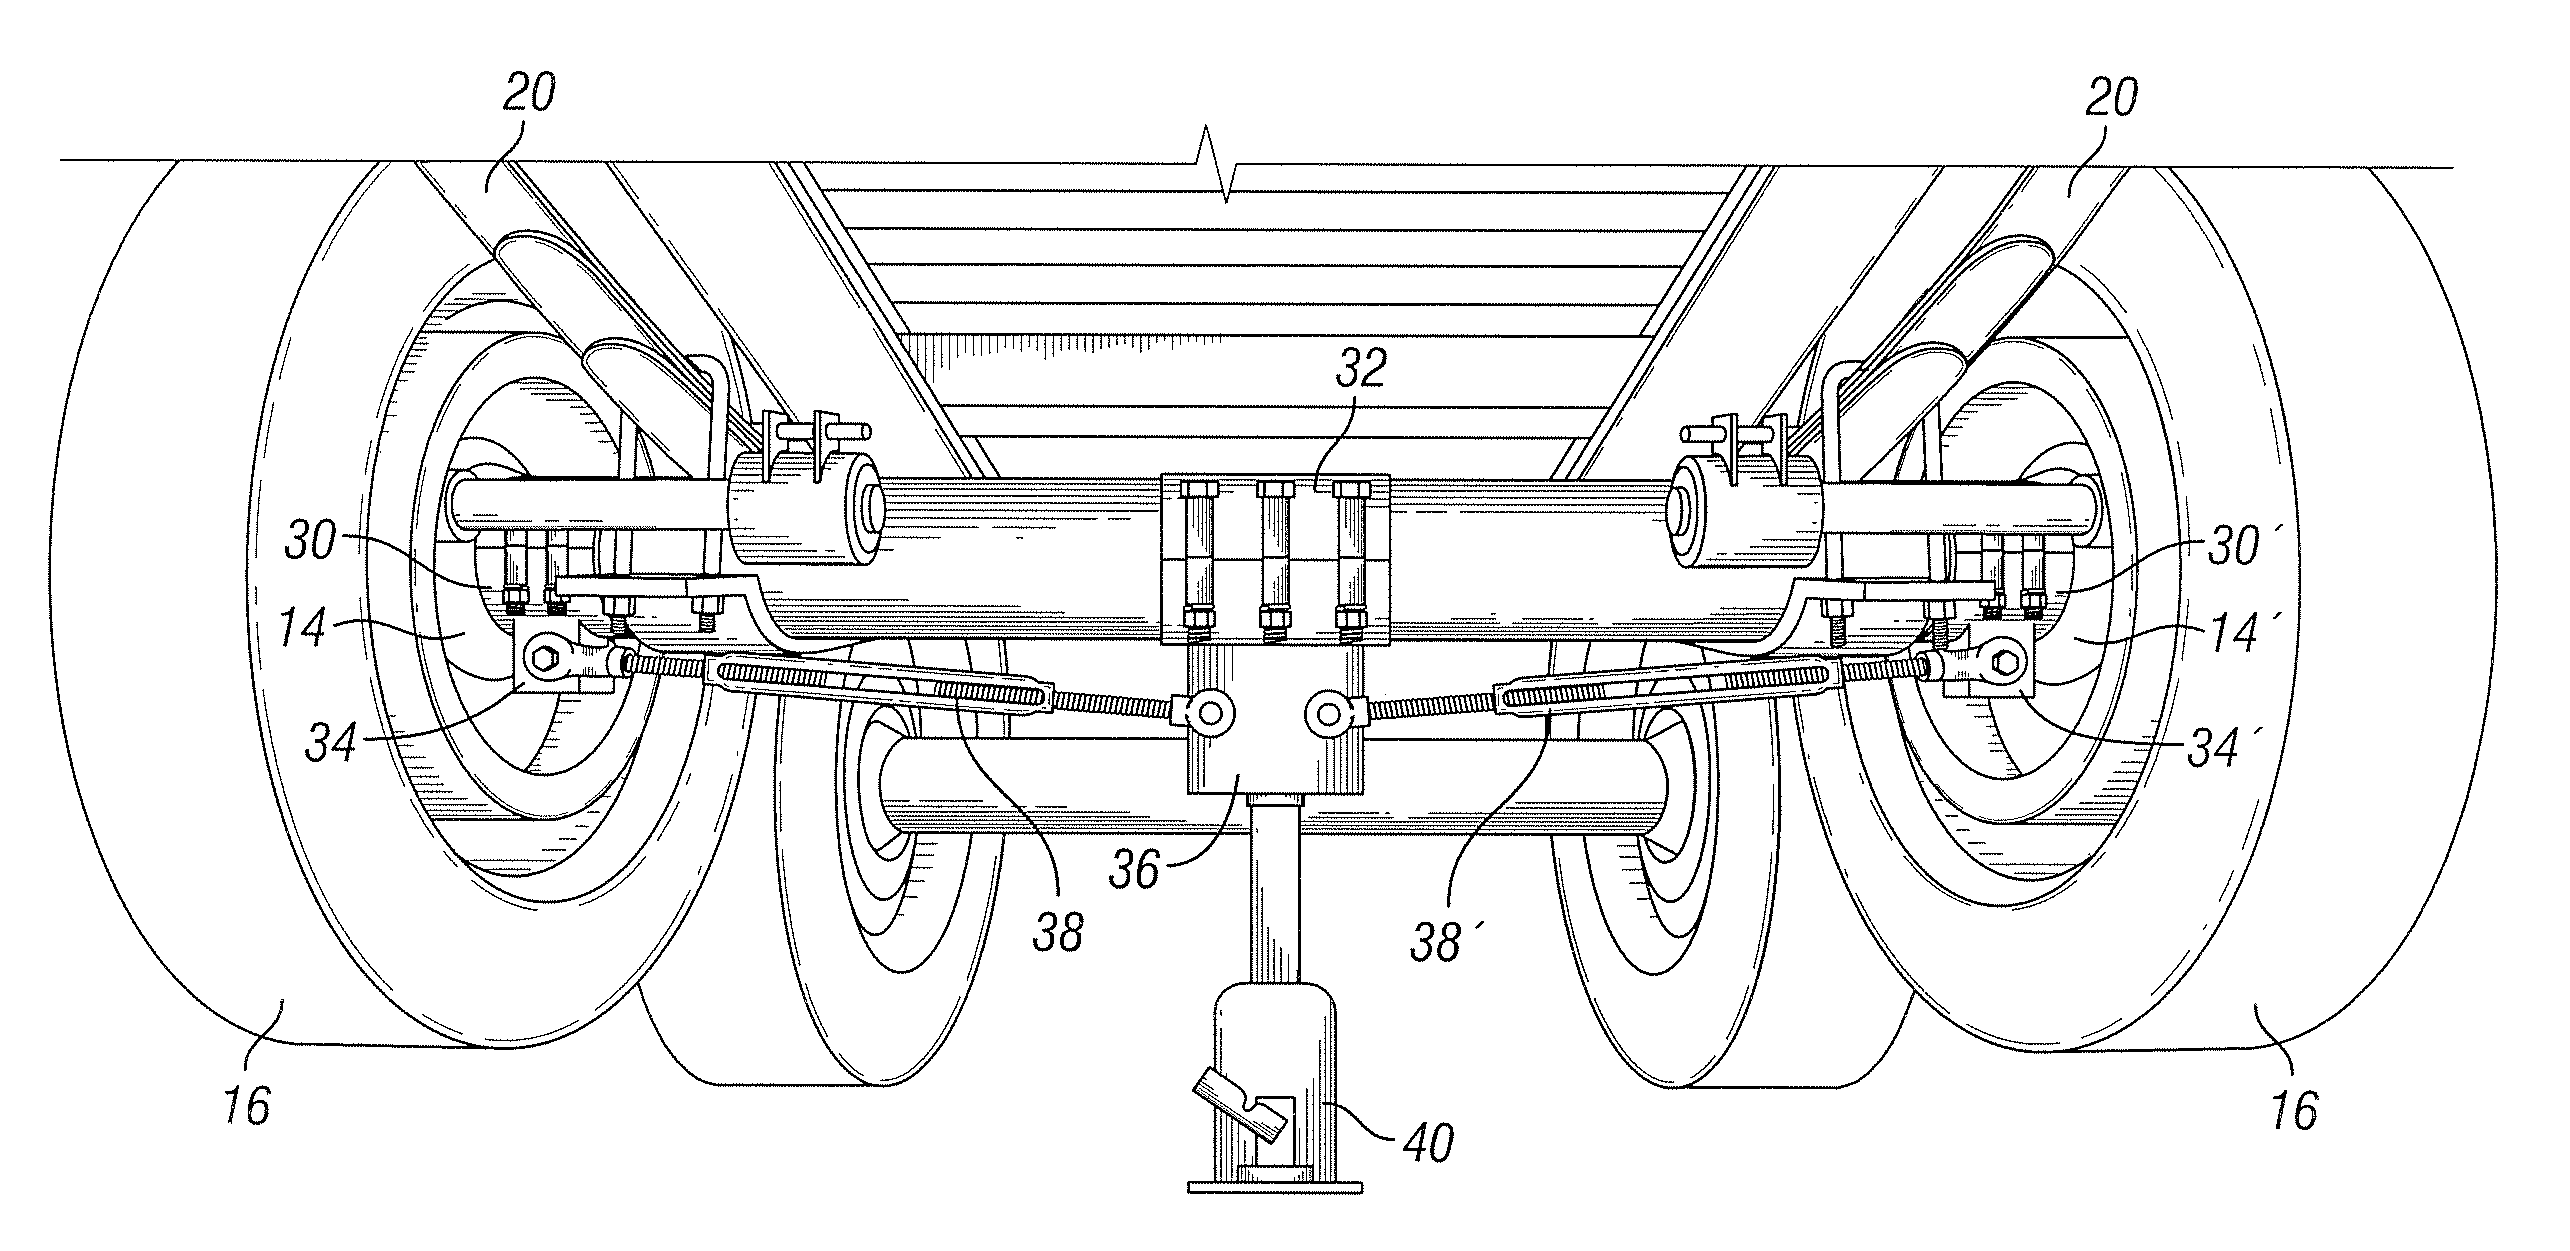 Brevet Us8333015 Method For Adjusting Axle Camber